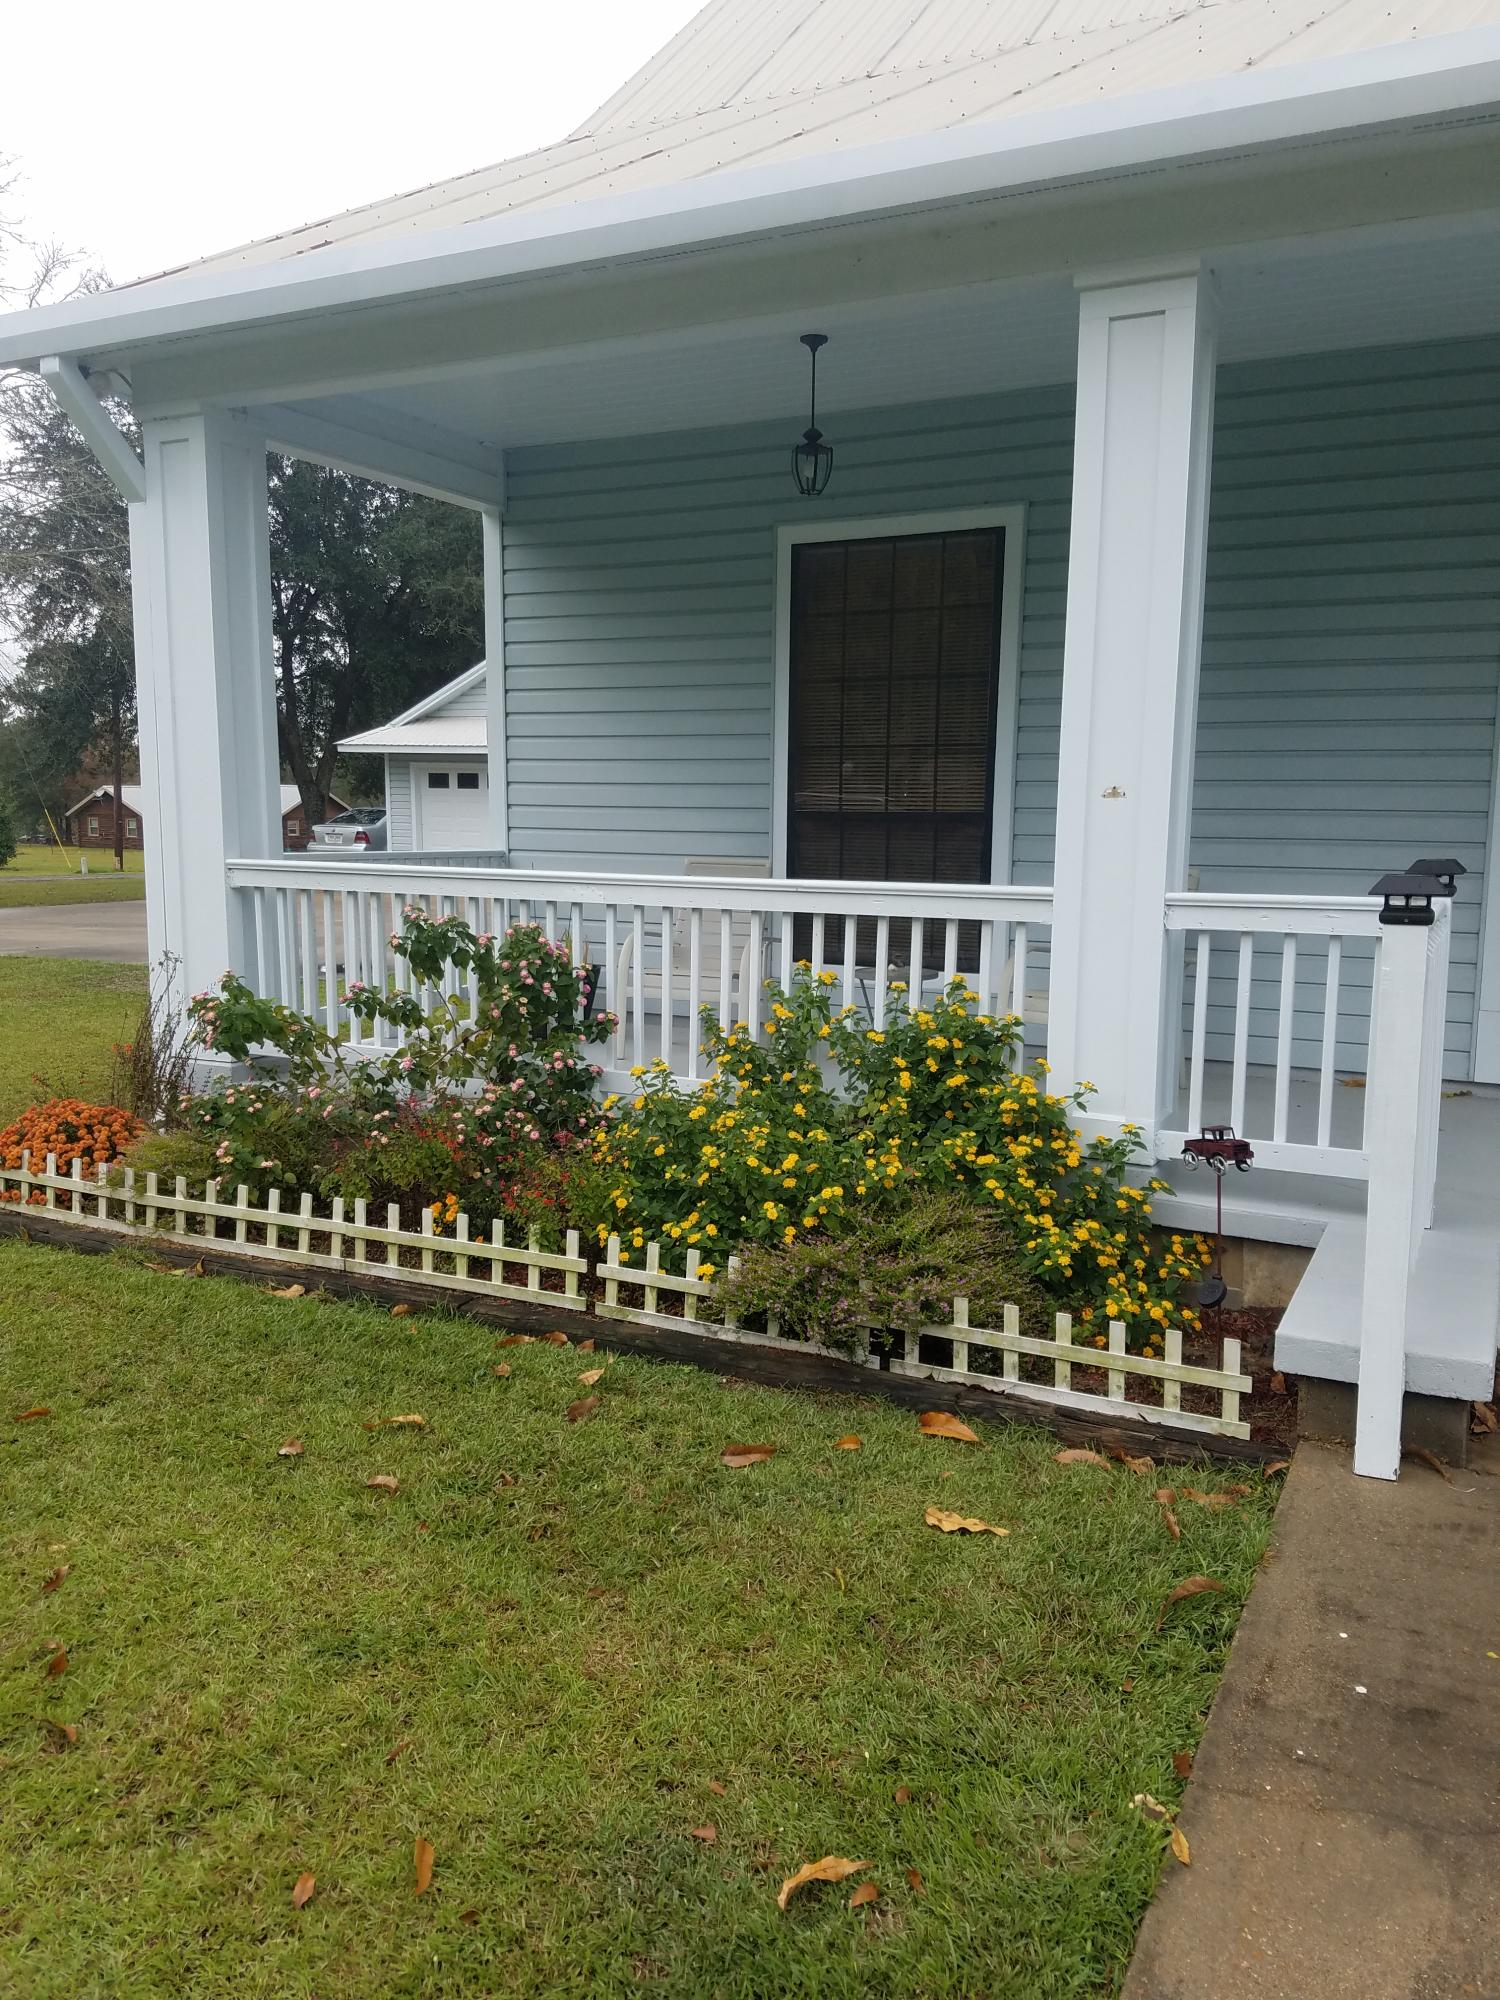 DeRidder home for sale, 1011 Granberry Rd, DeRidder LA - $255,000